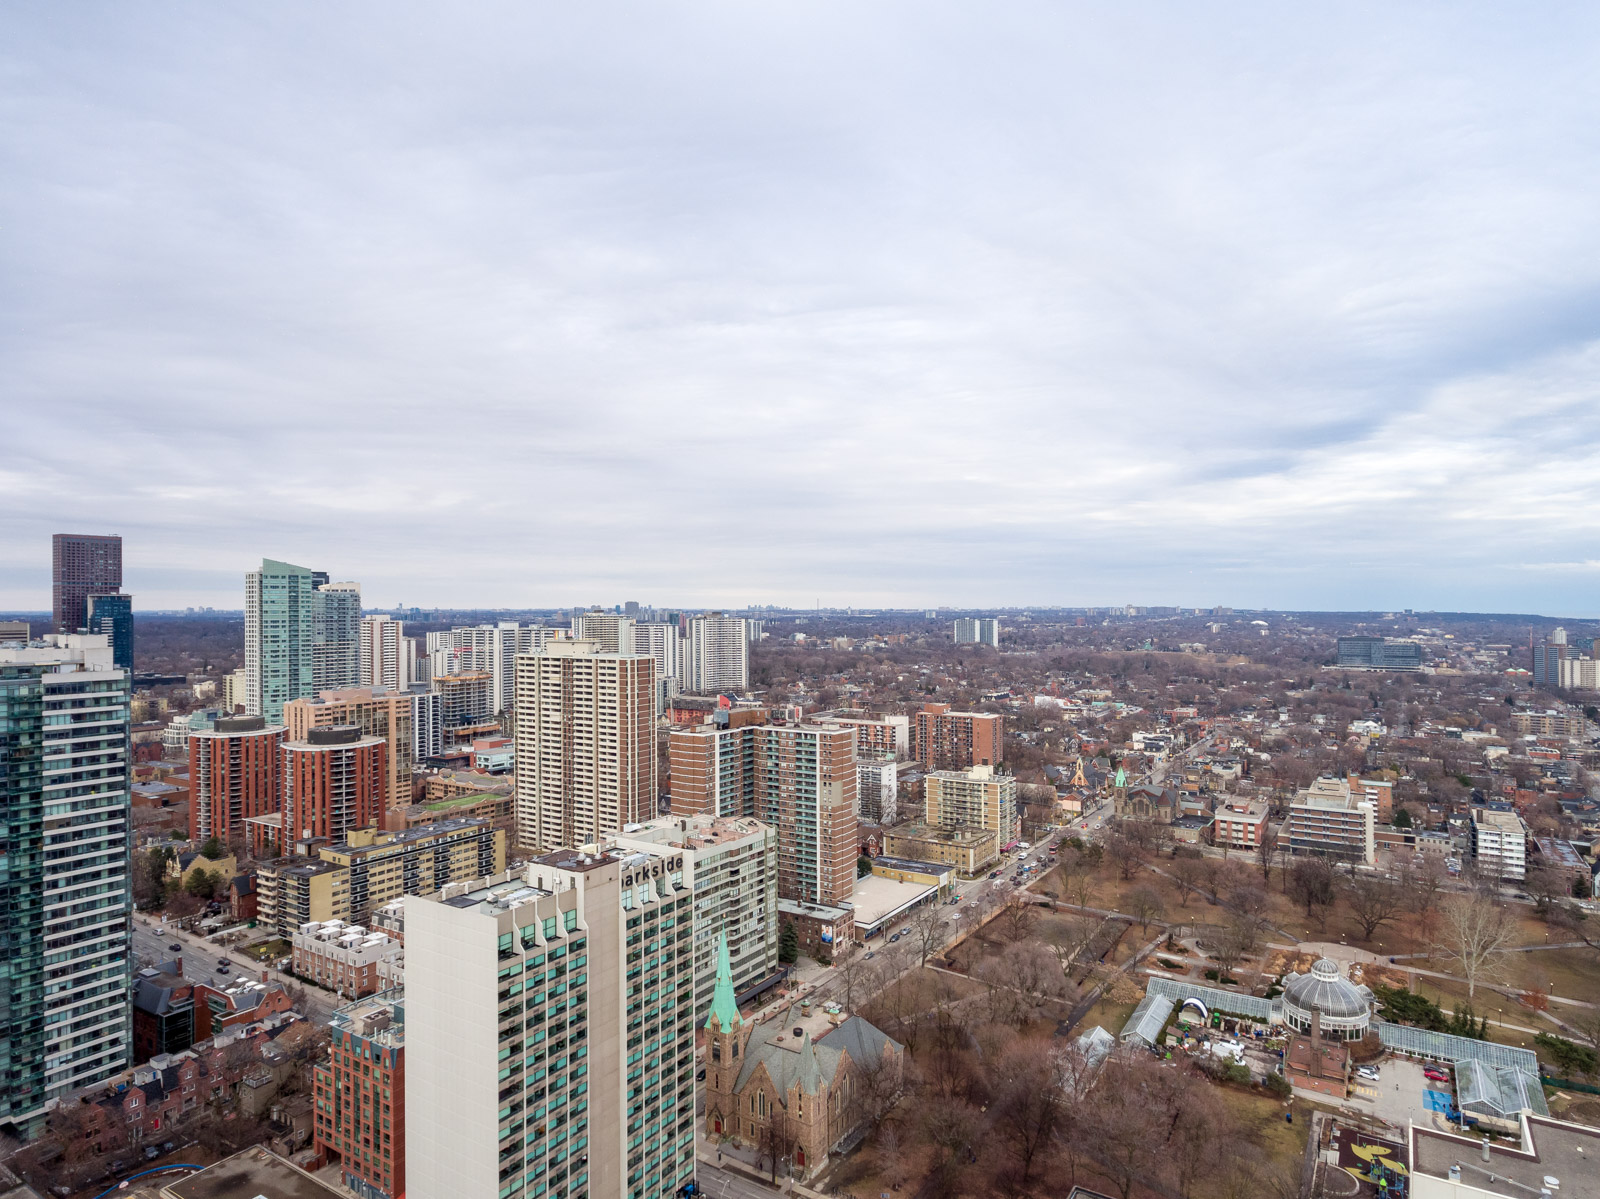 Aerial view of Church-Yonge Corridor during winter with buildings and parks.